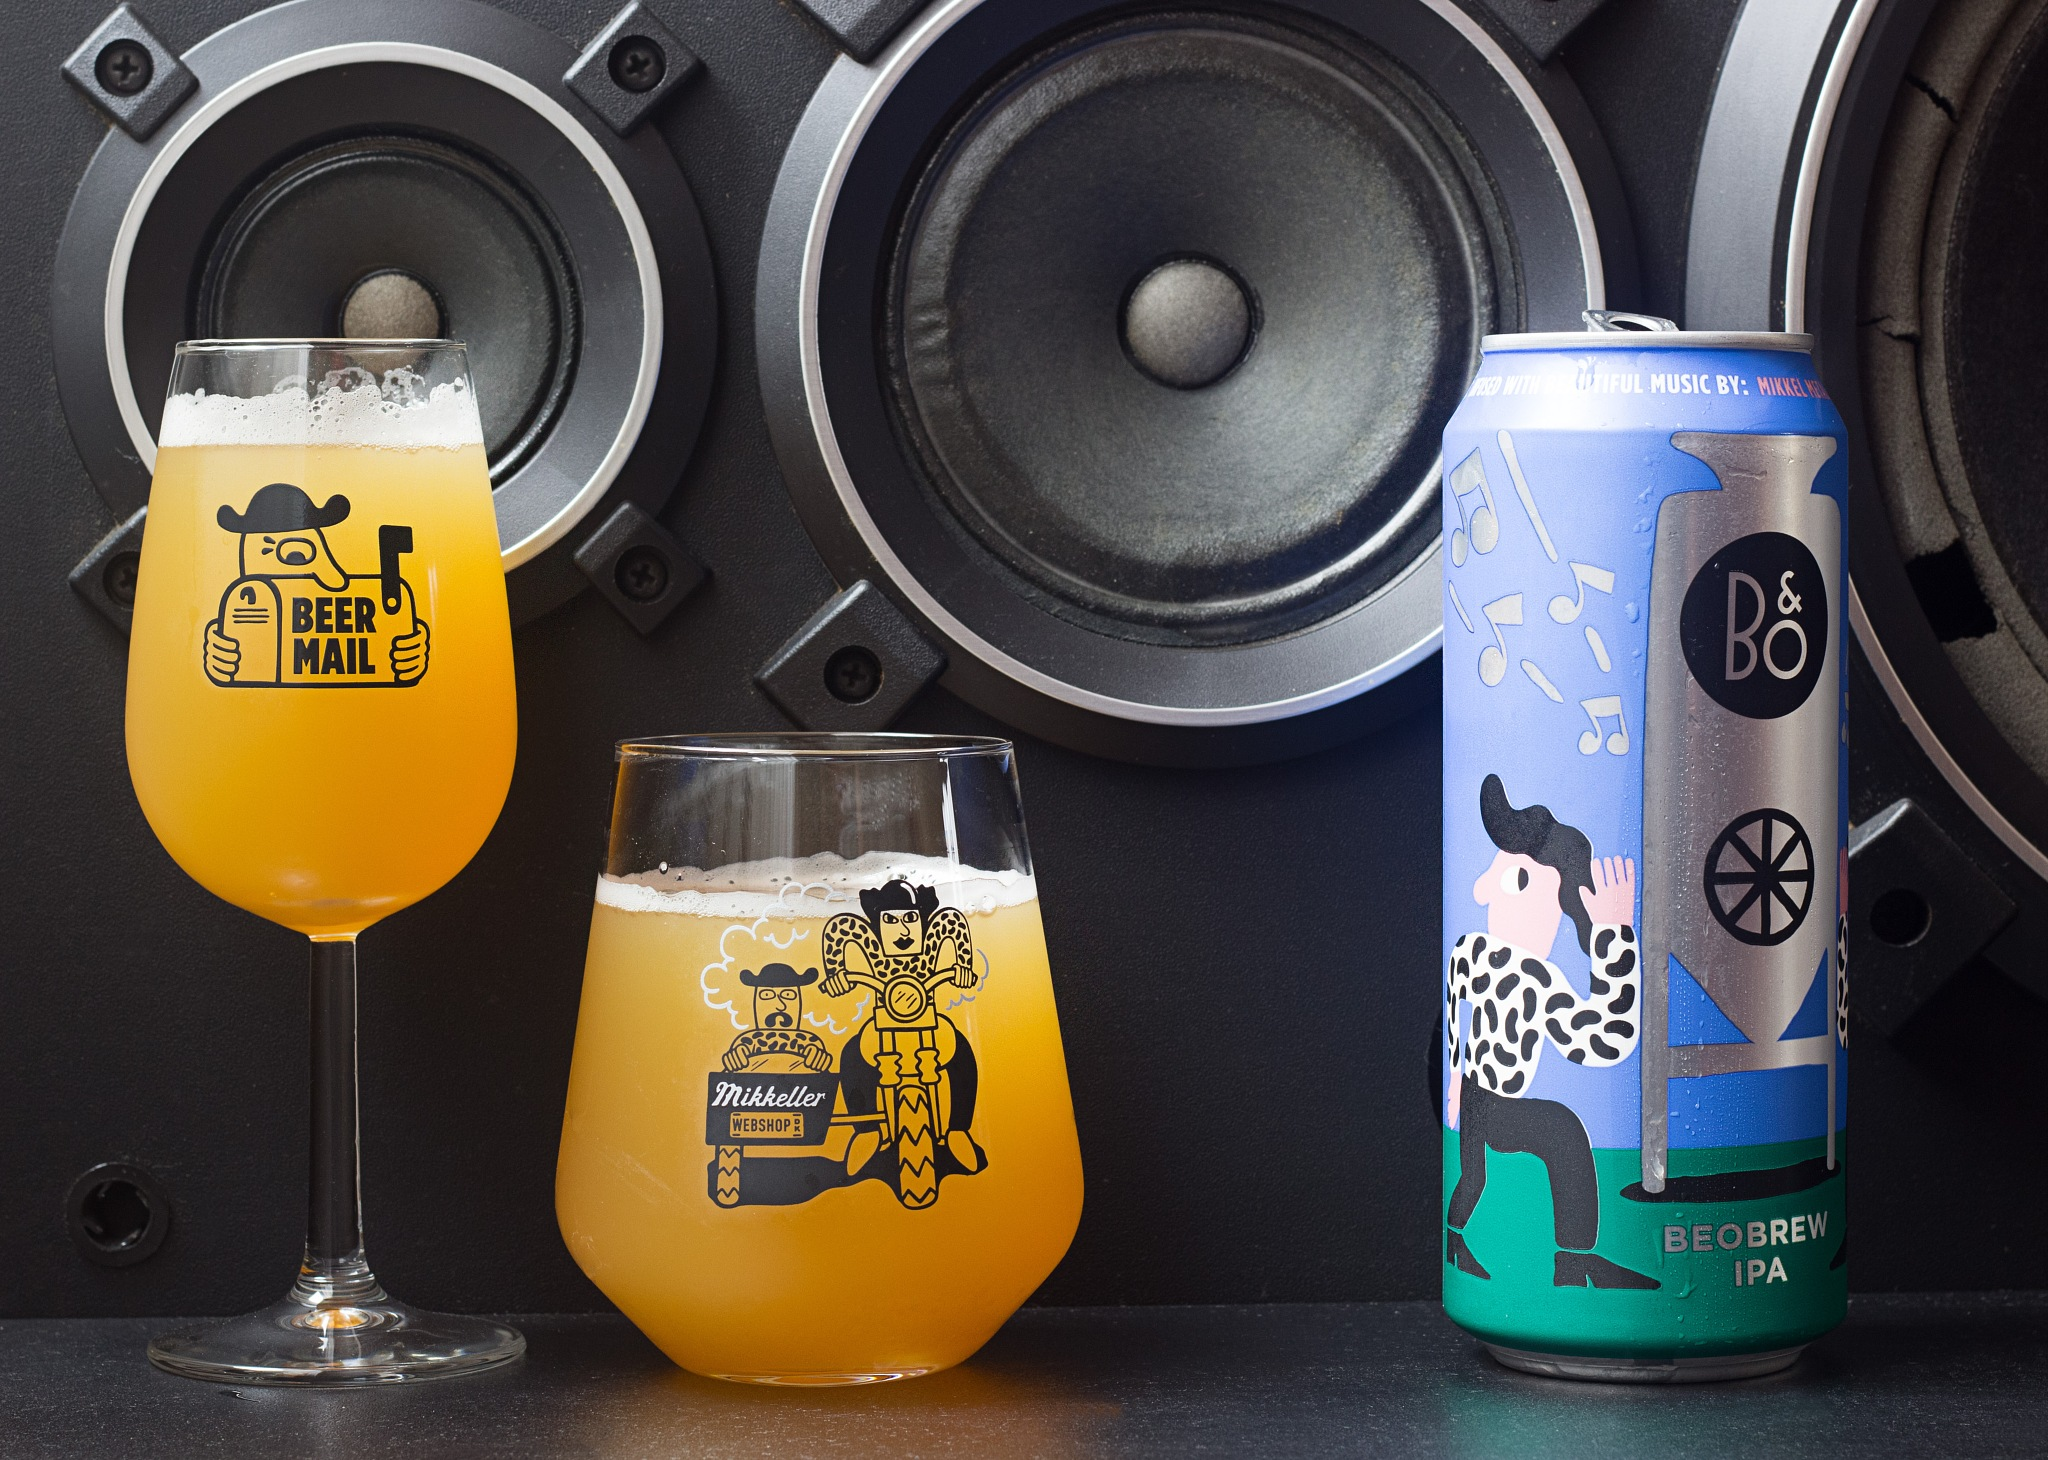 Beobrew IPA - Bang & Olufsen by Franck Rouanet